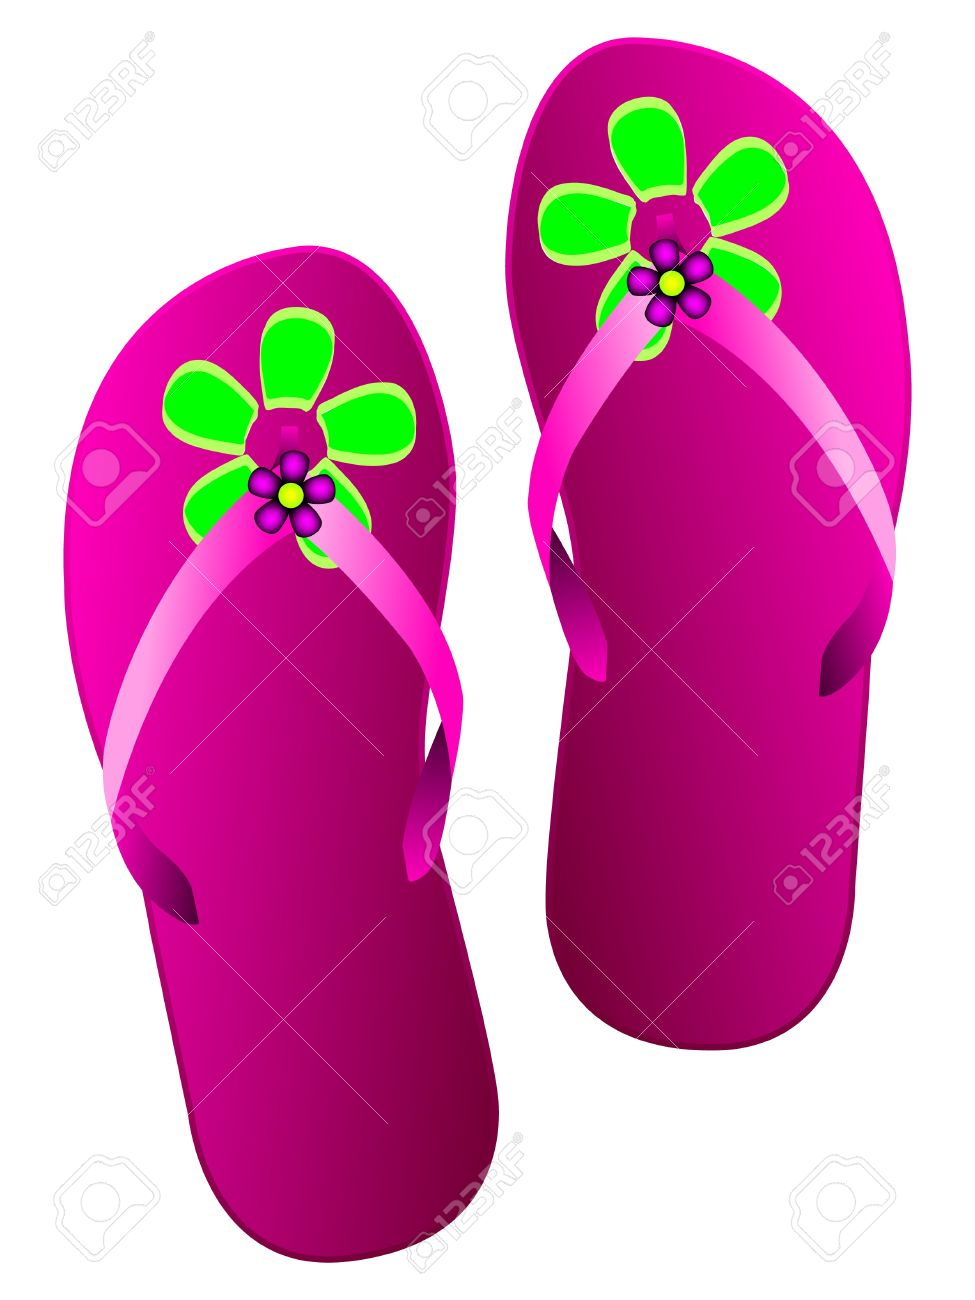 975x1300 Sandal Clipart Slipper